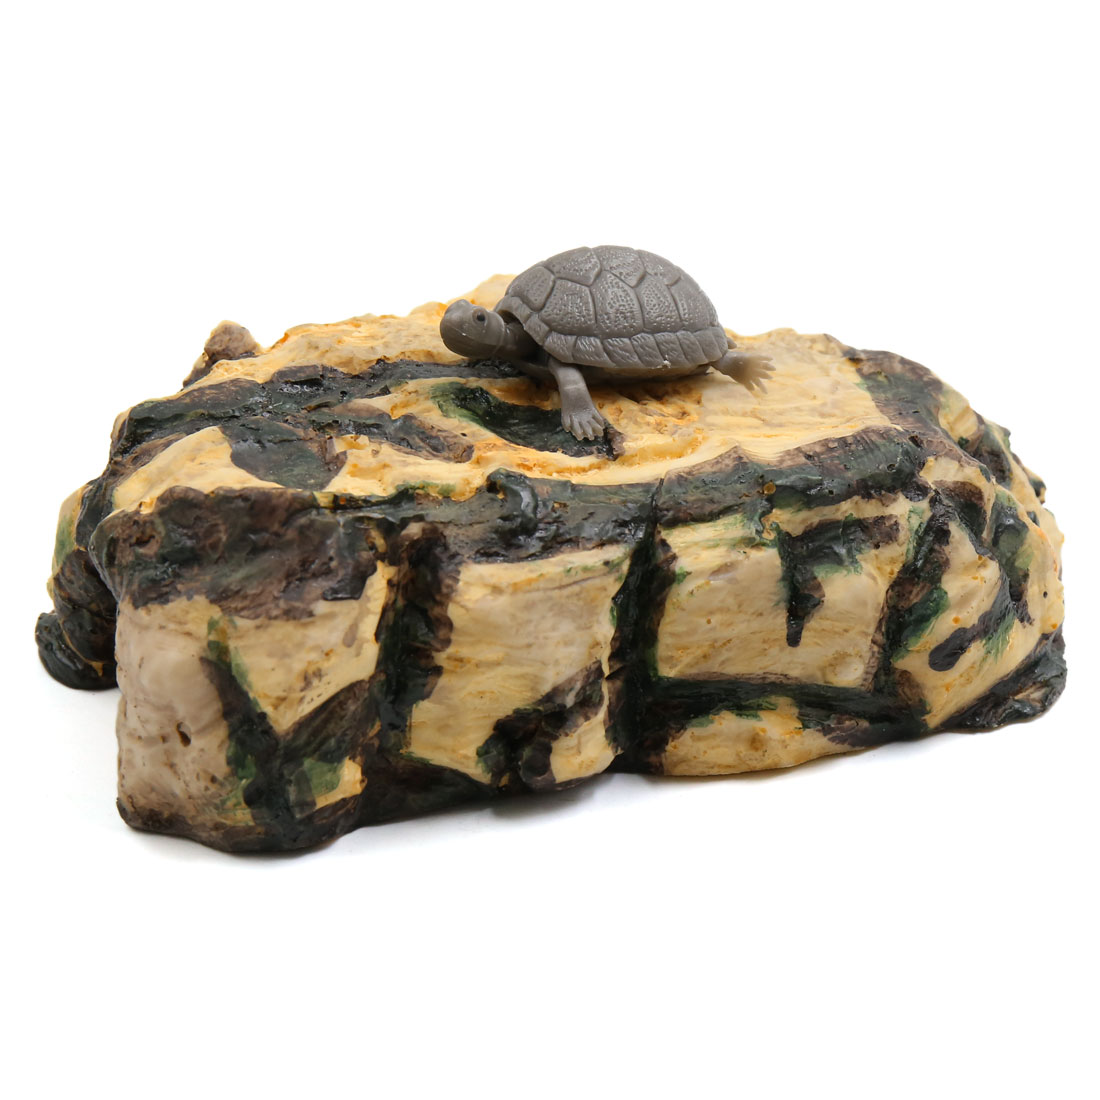 Resin Ramp Climb Stone Fish Tank Aquarium Landscape Decor for Turtles Tortoise